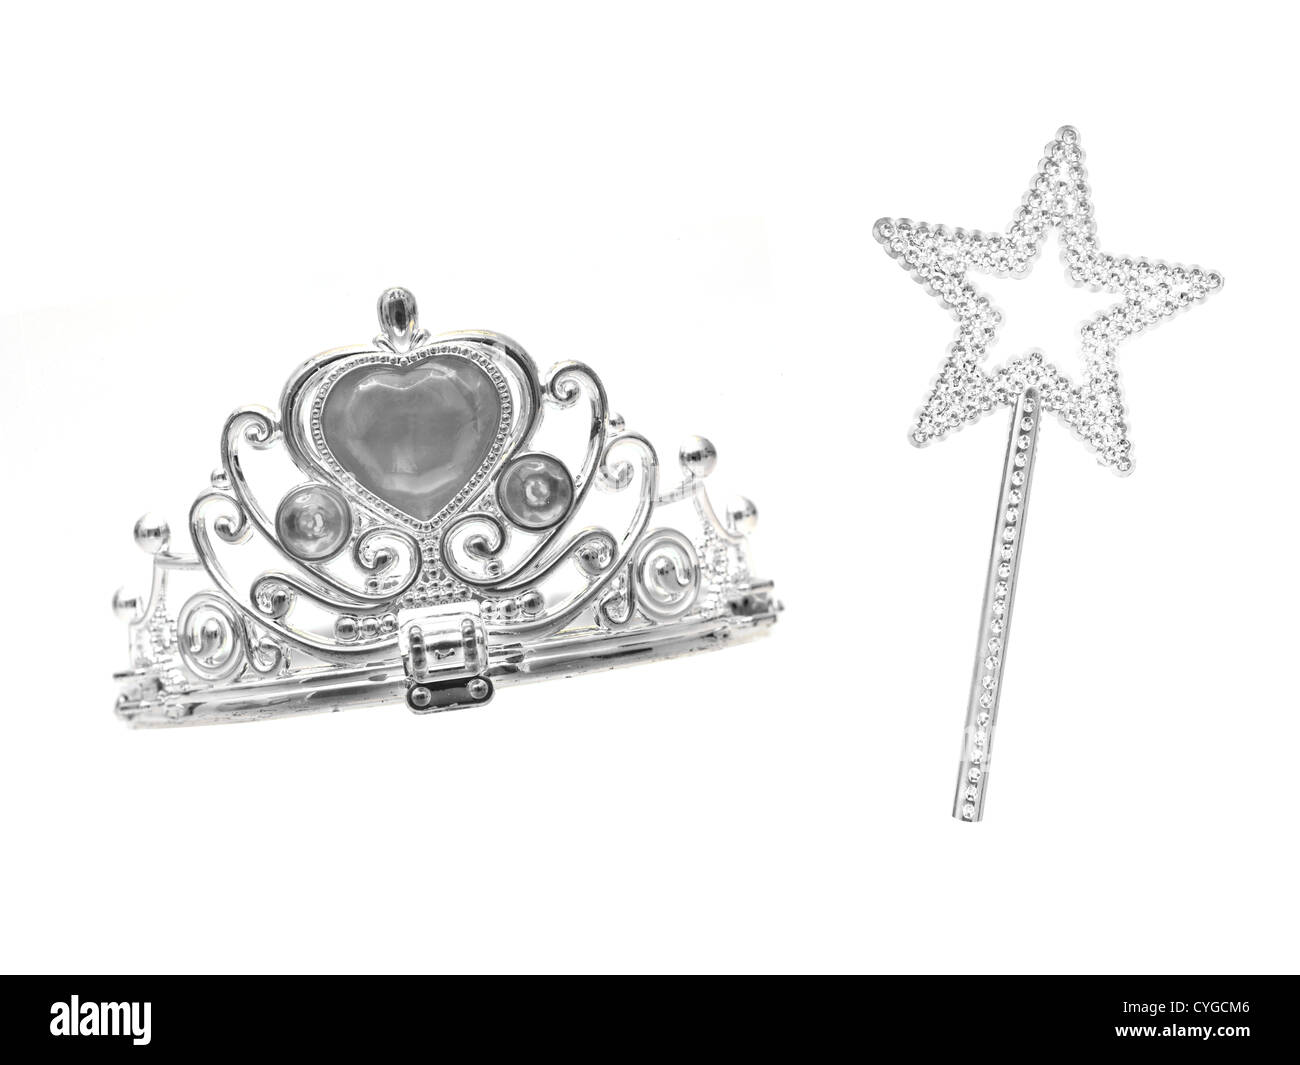 A tiara isolated against a white background - Stock Image